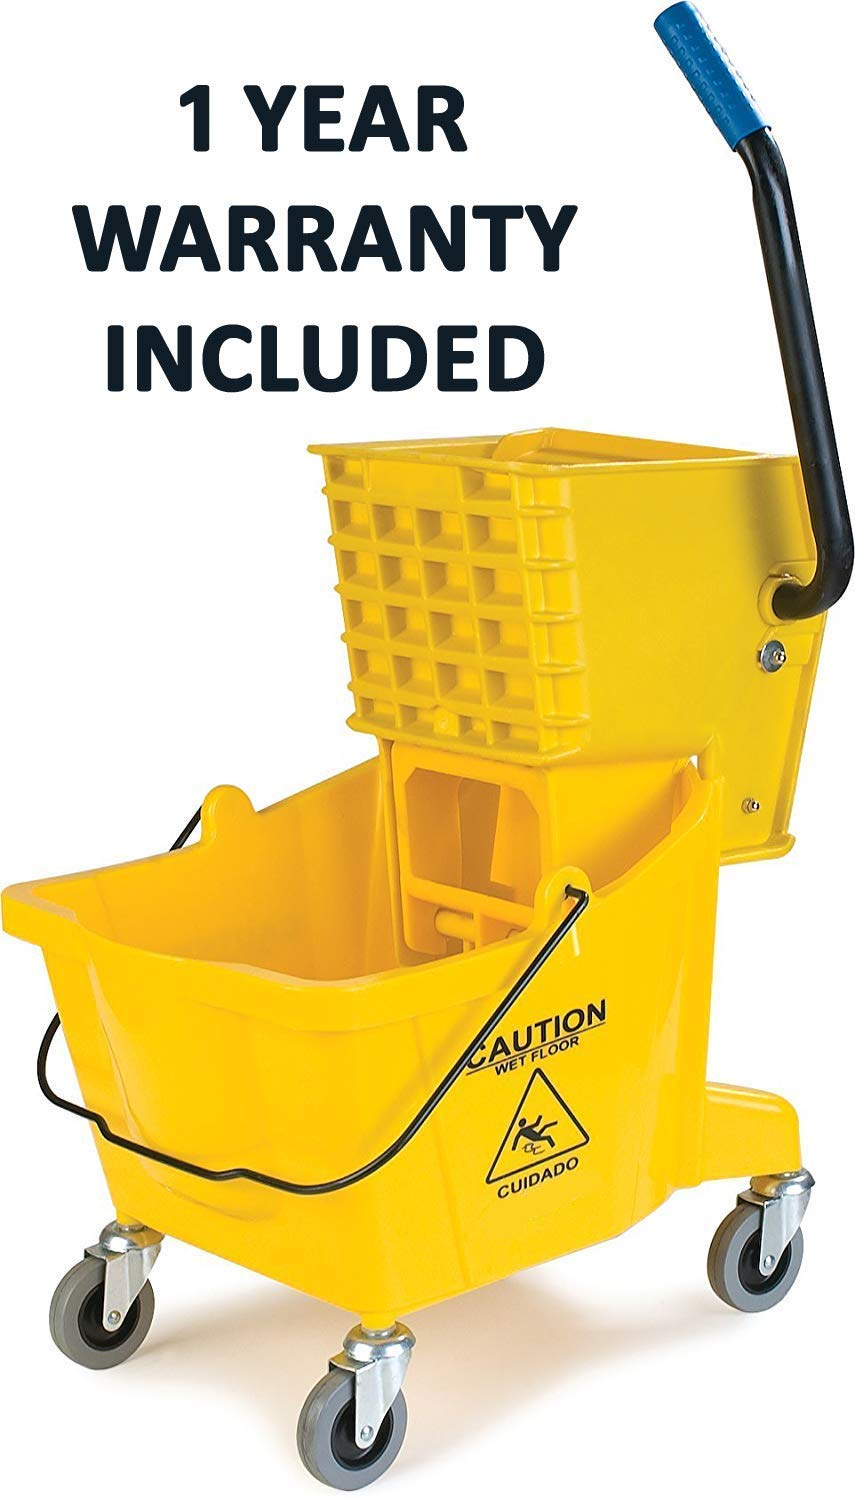 Simpli-Magic 79139 Commercial Mop Bucket with Side Press Wringer, Industrial (Renewed)